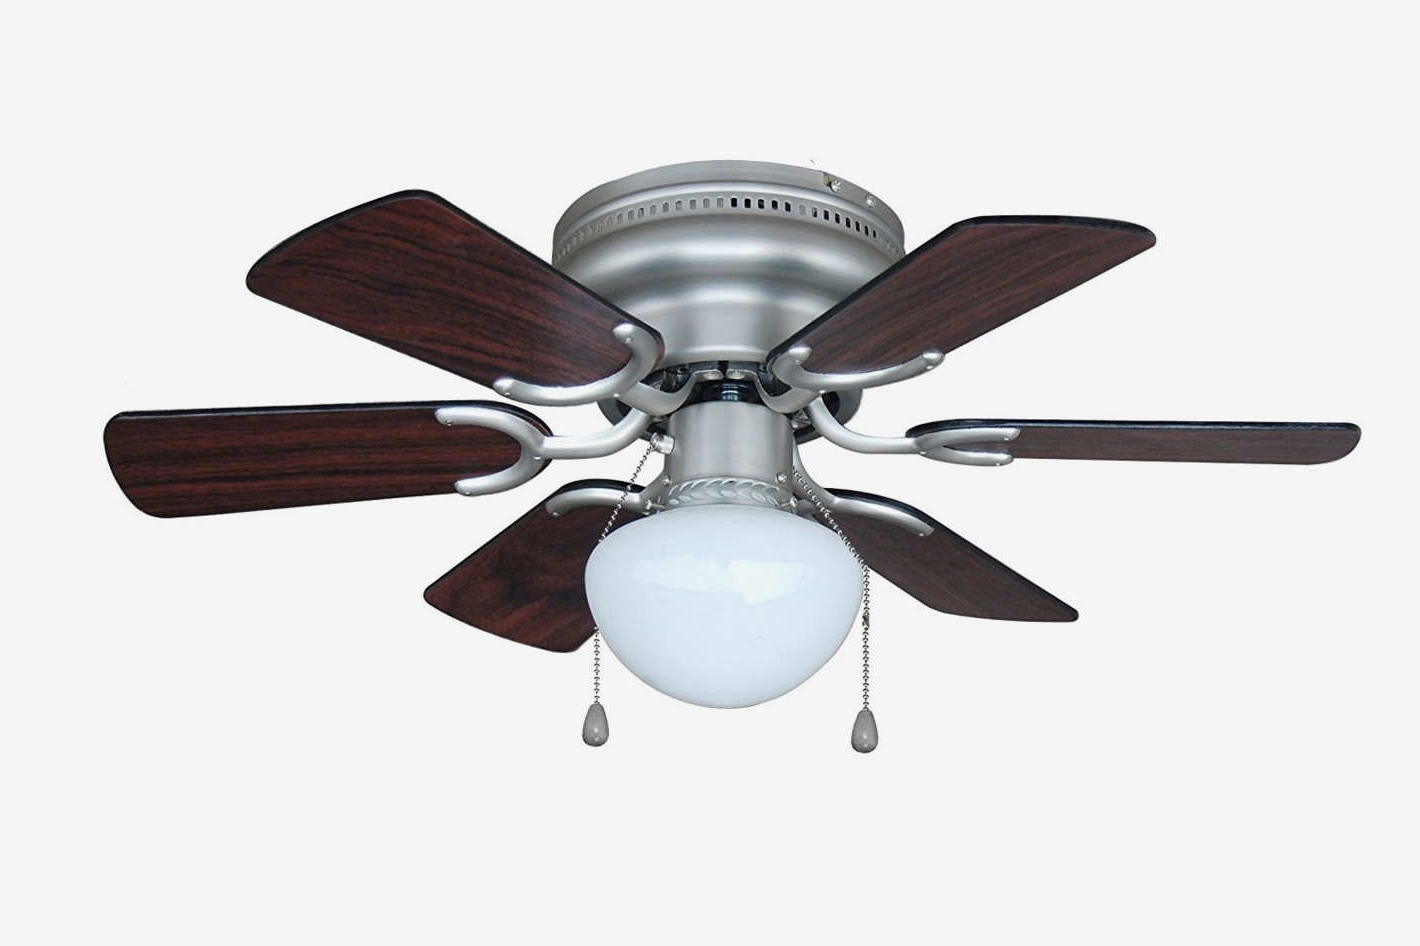 The 9 Best Ceiling Fans On Amazon 2018 Regarding 2019 Outdoor Ceiling Fans Under $ (View 8 of 20)